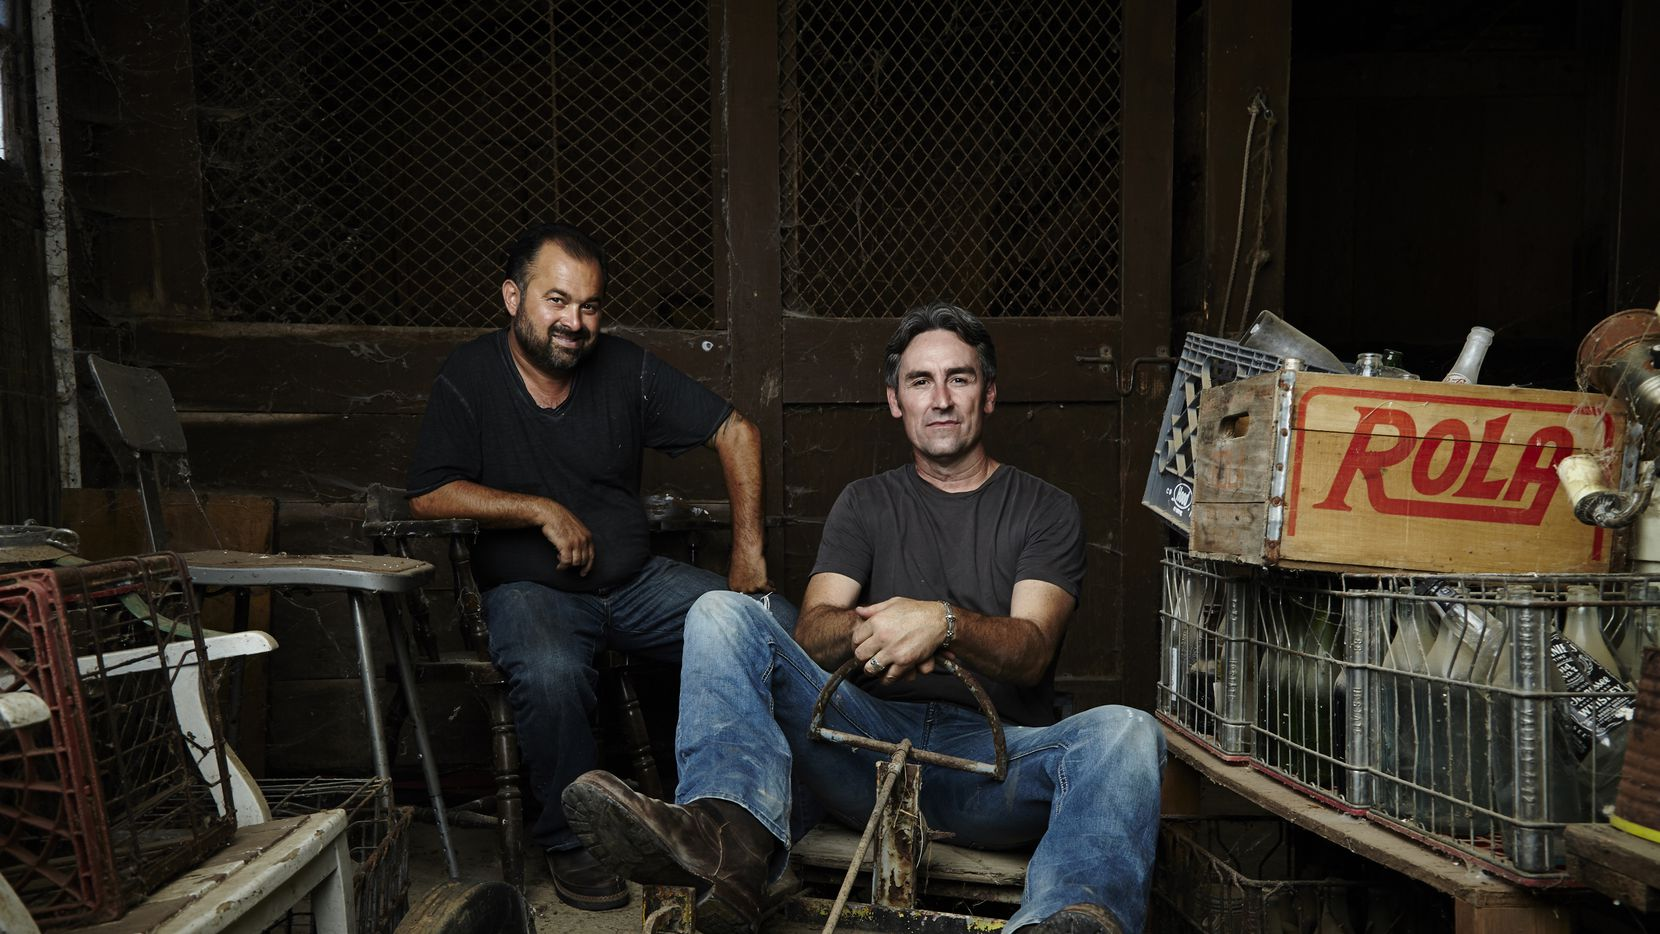 Mike Wolfe and Frank Fritz are the stars of 'American Pickers,' a show that focuses on finding treasure that others thought was trash. They want to film in Texas if they can find the right people to feature.